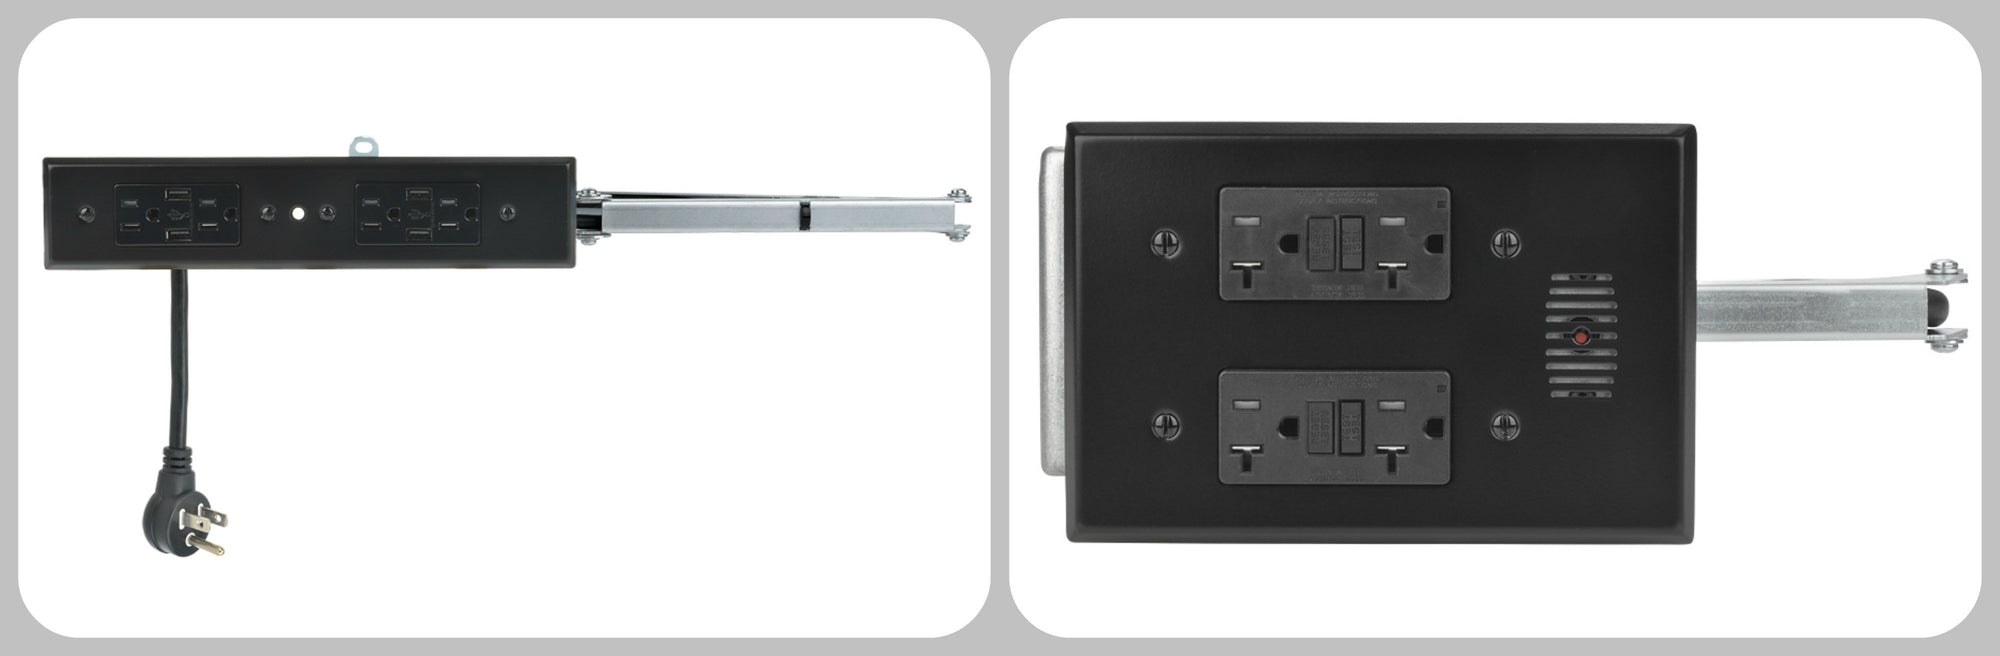 Taking Docking Drawer Outlets to the Next Level: Are You Ready?